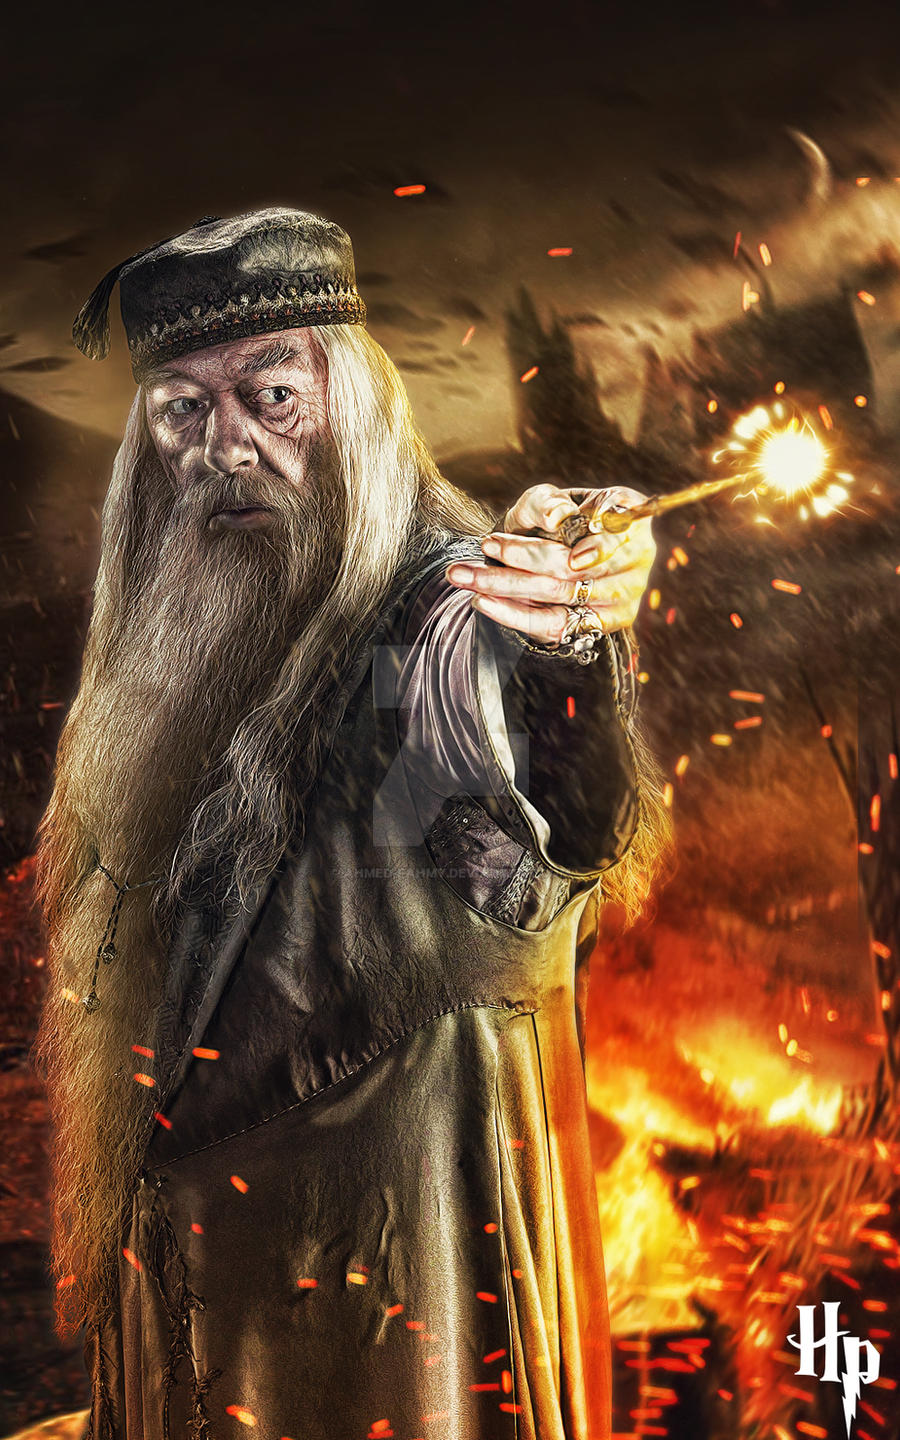 Albus Dumbledore Poster By Ahmed Fahmy On Deviantart